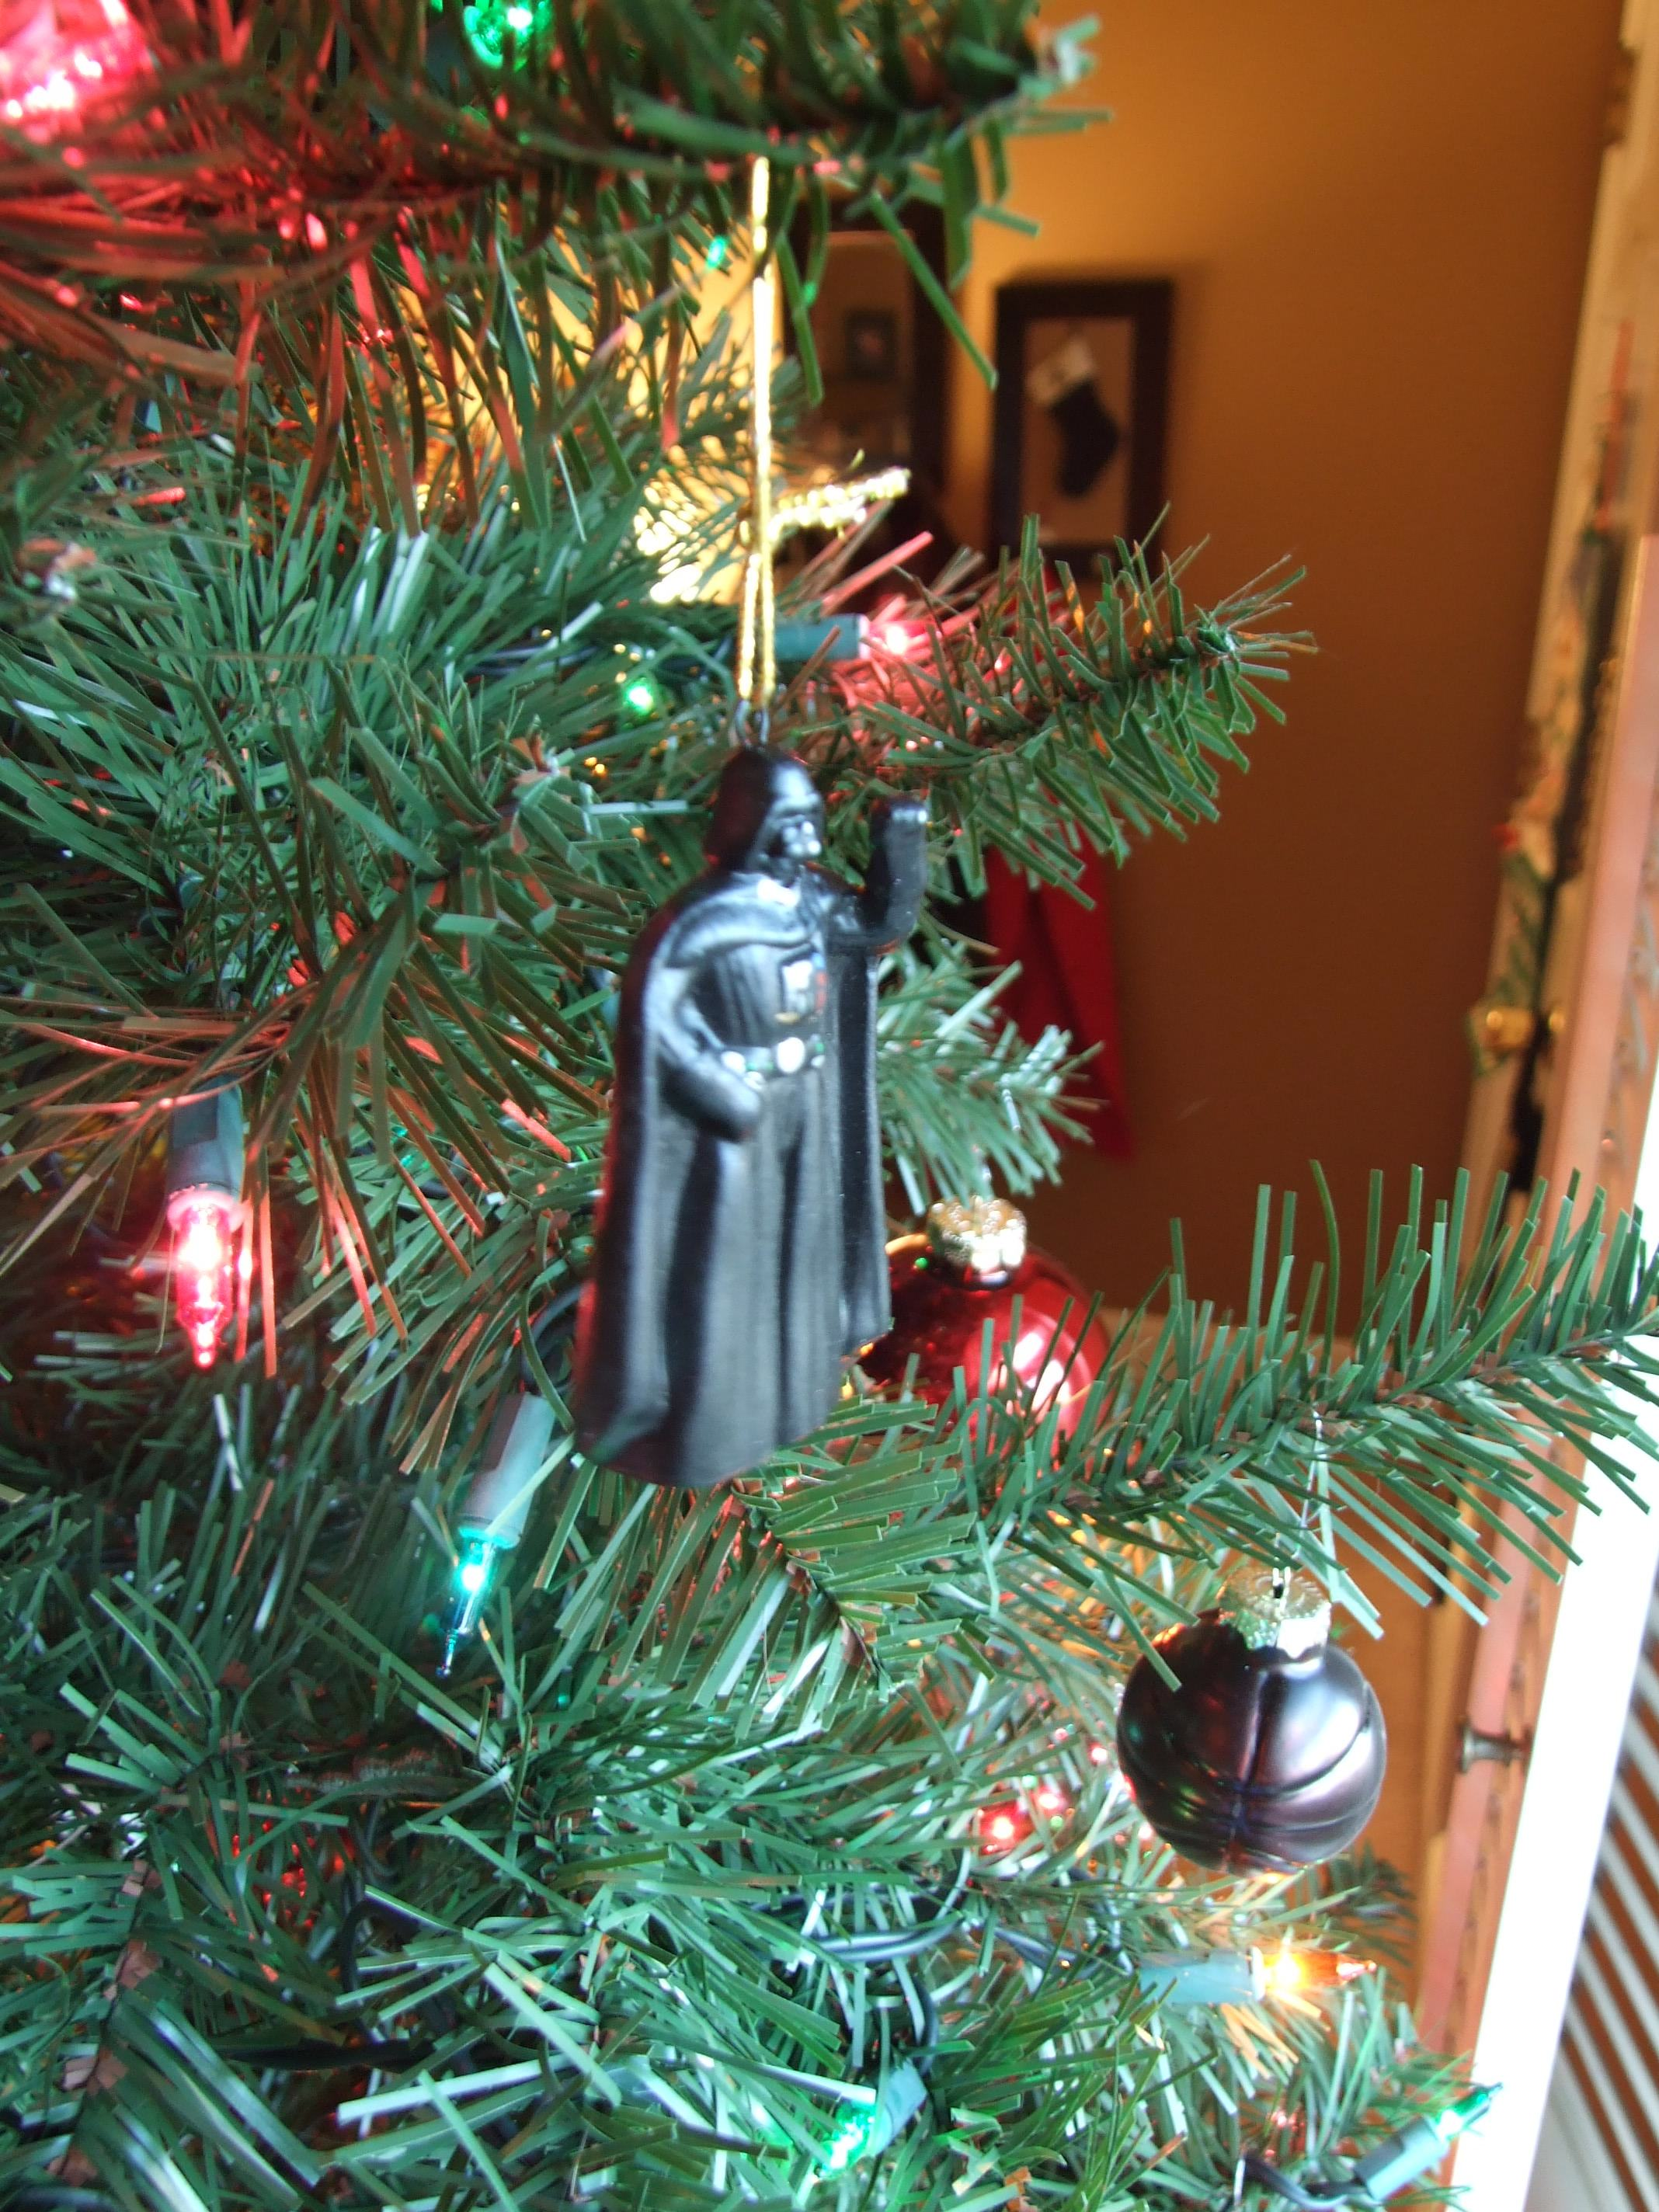 The Most Awesome Star Wars Christmas Decorations In The Galaxy